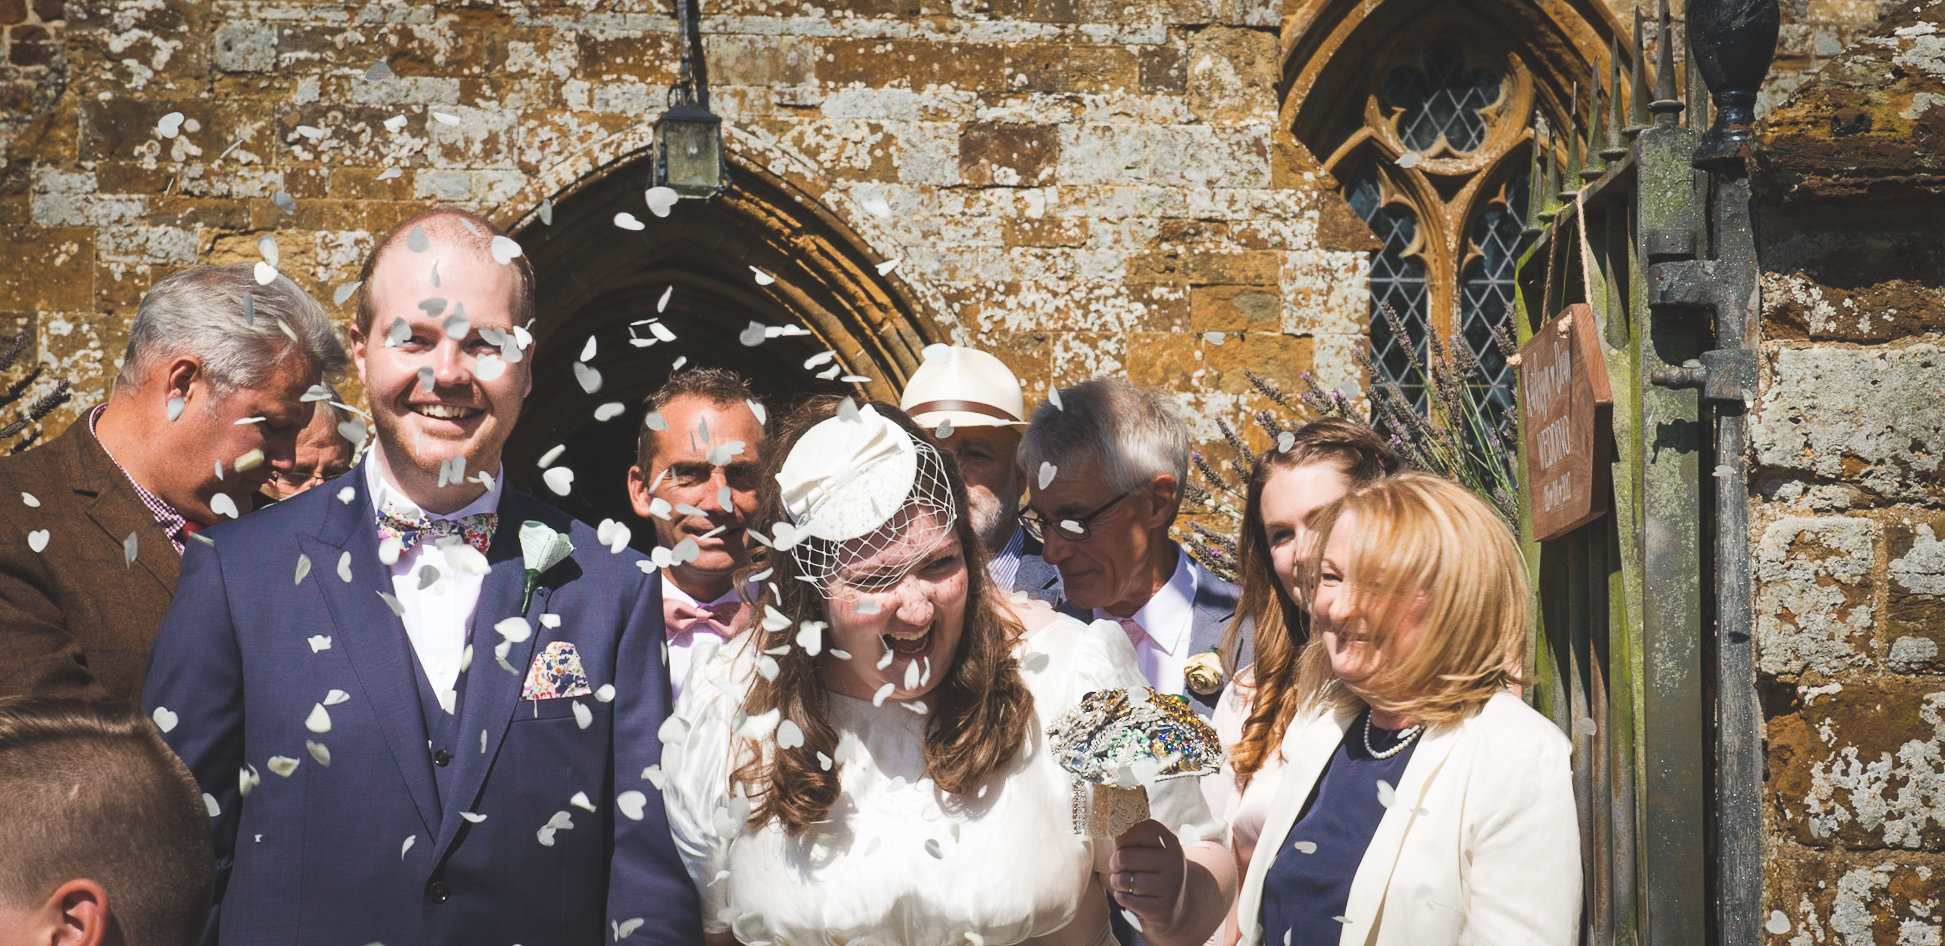 Bride and groom, confetti, culworth church, oxfordshire weddings, happy, love brooch bouquet